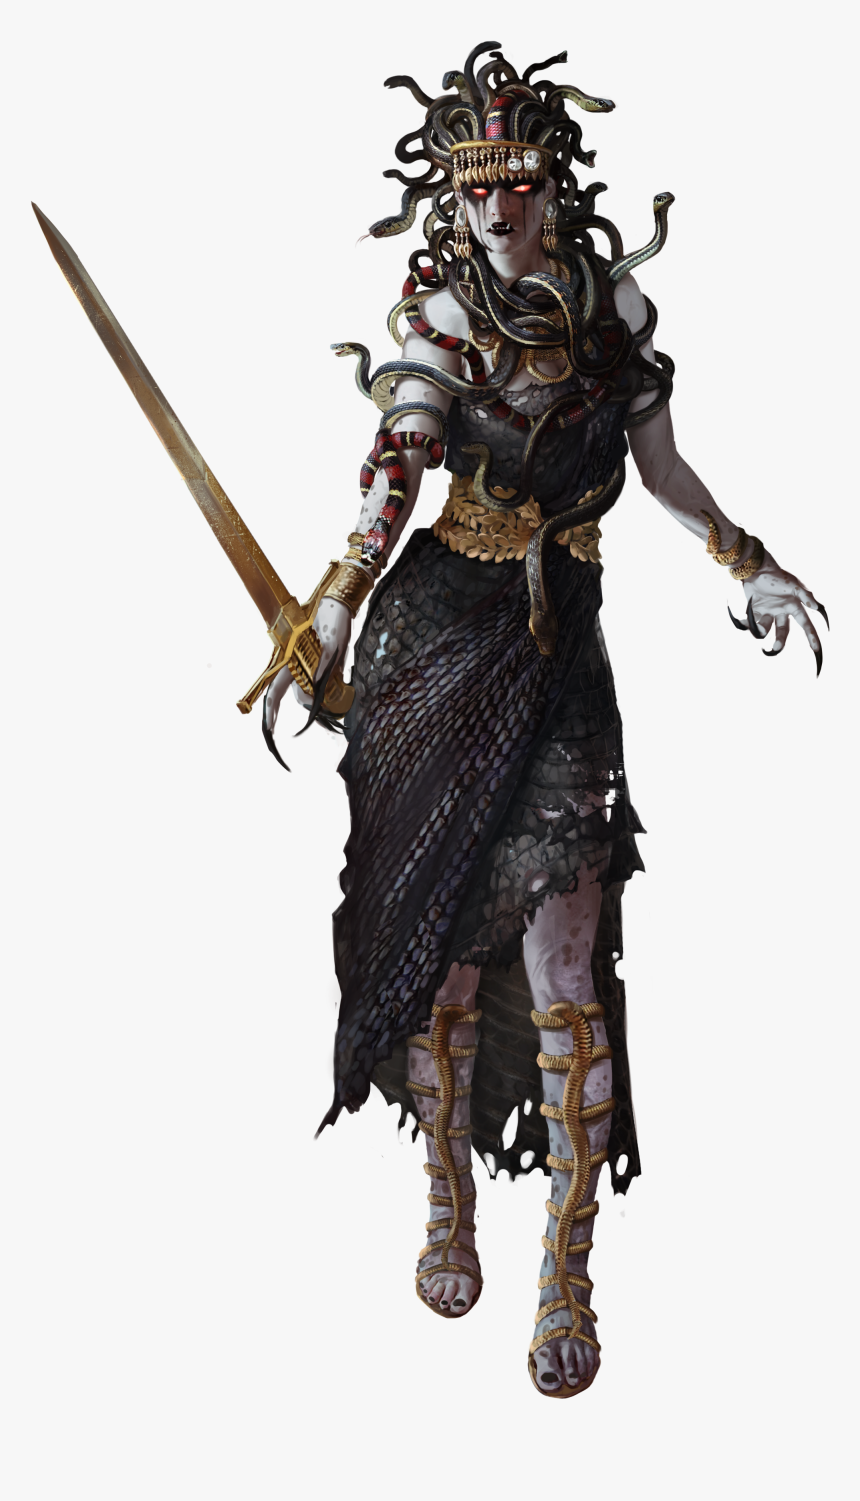 Assassins Creed Odyssey Art Medusa Assassin S Creed Odyssey Hd Png Download Transparent Png Image Pngitem